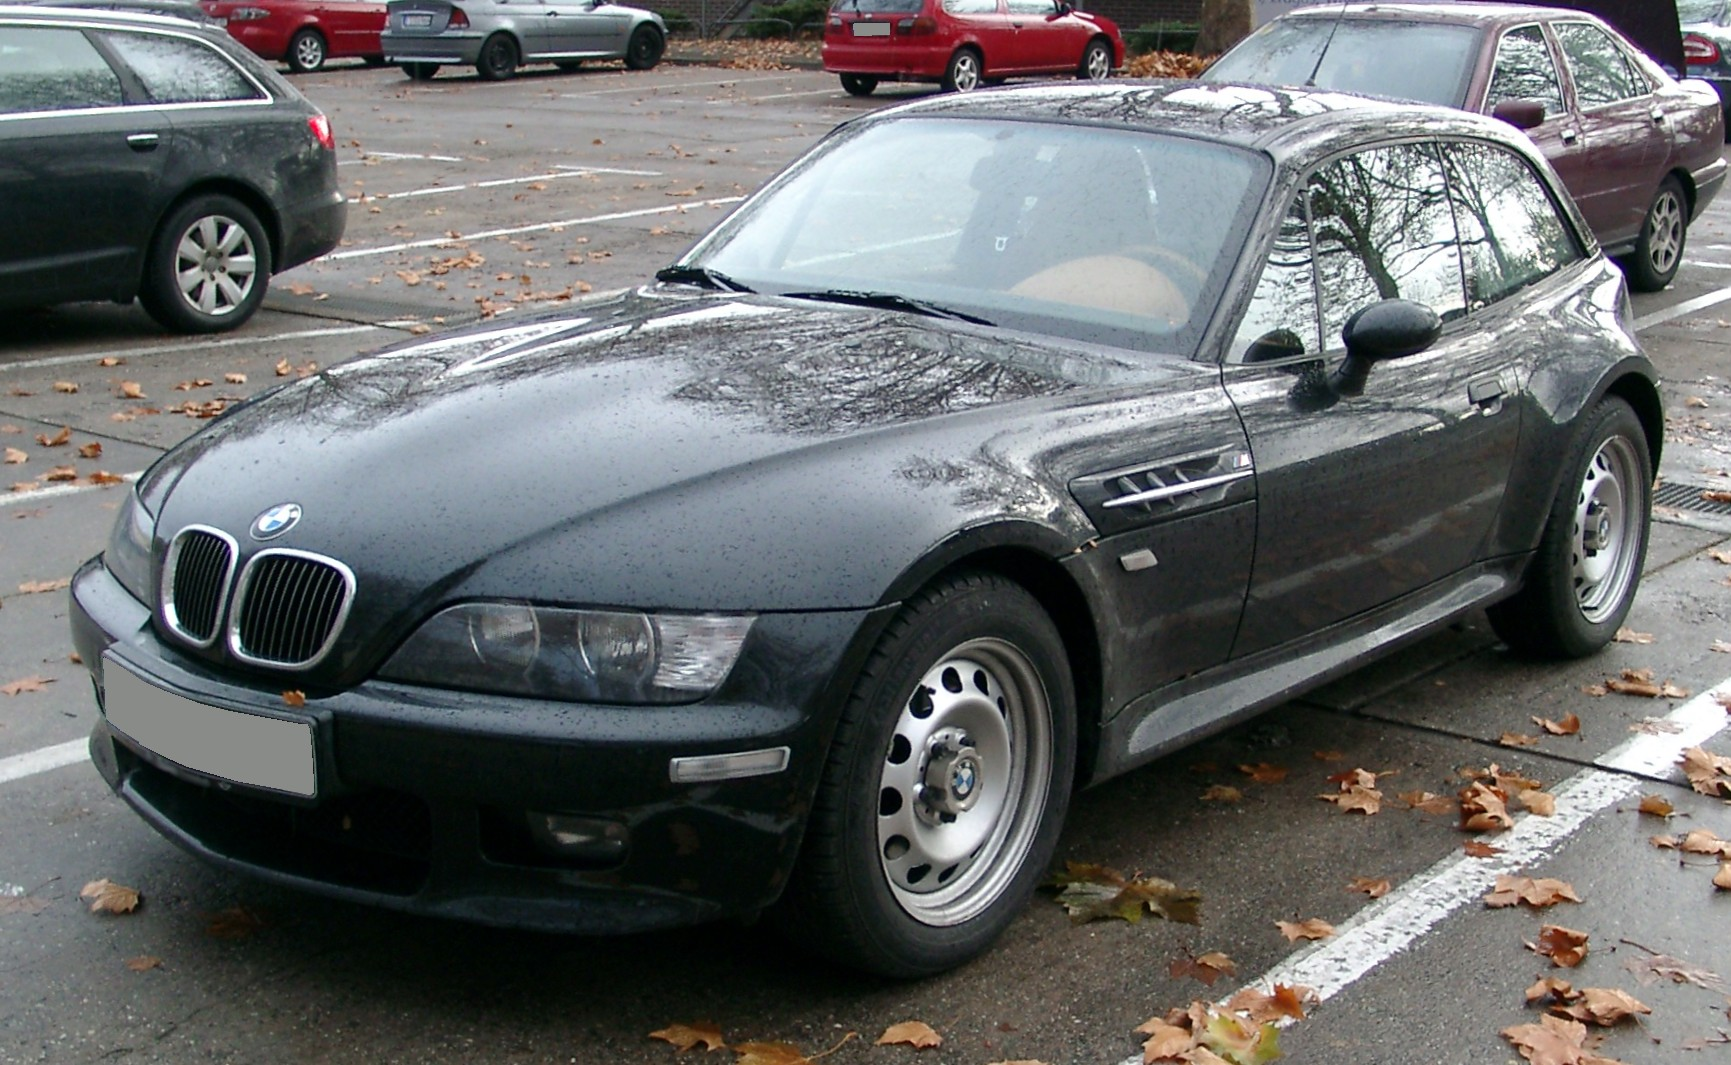 File:BMW Z3 Coupe front 20071126.jpg - Wikimedia Commons